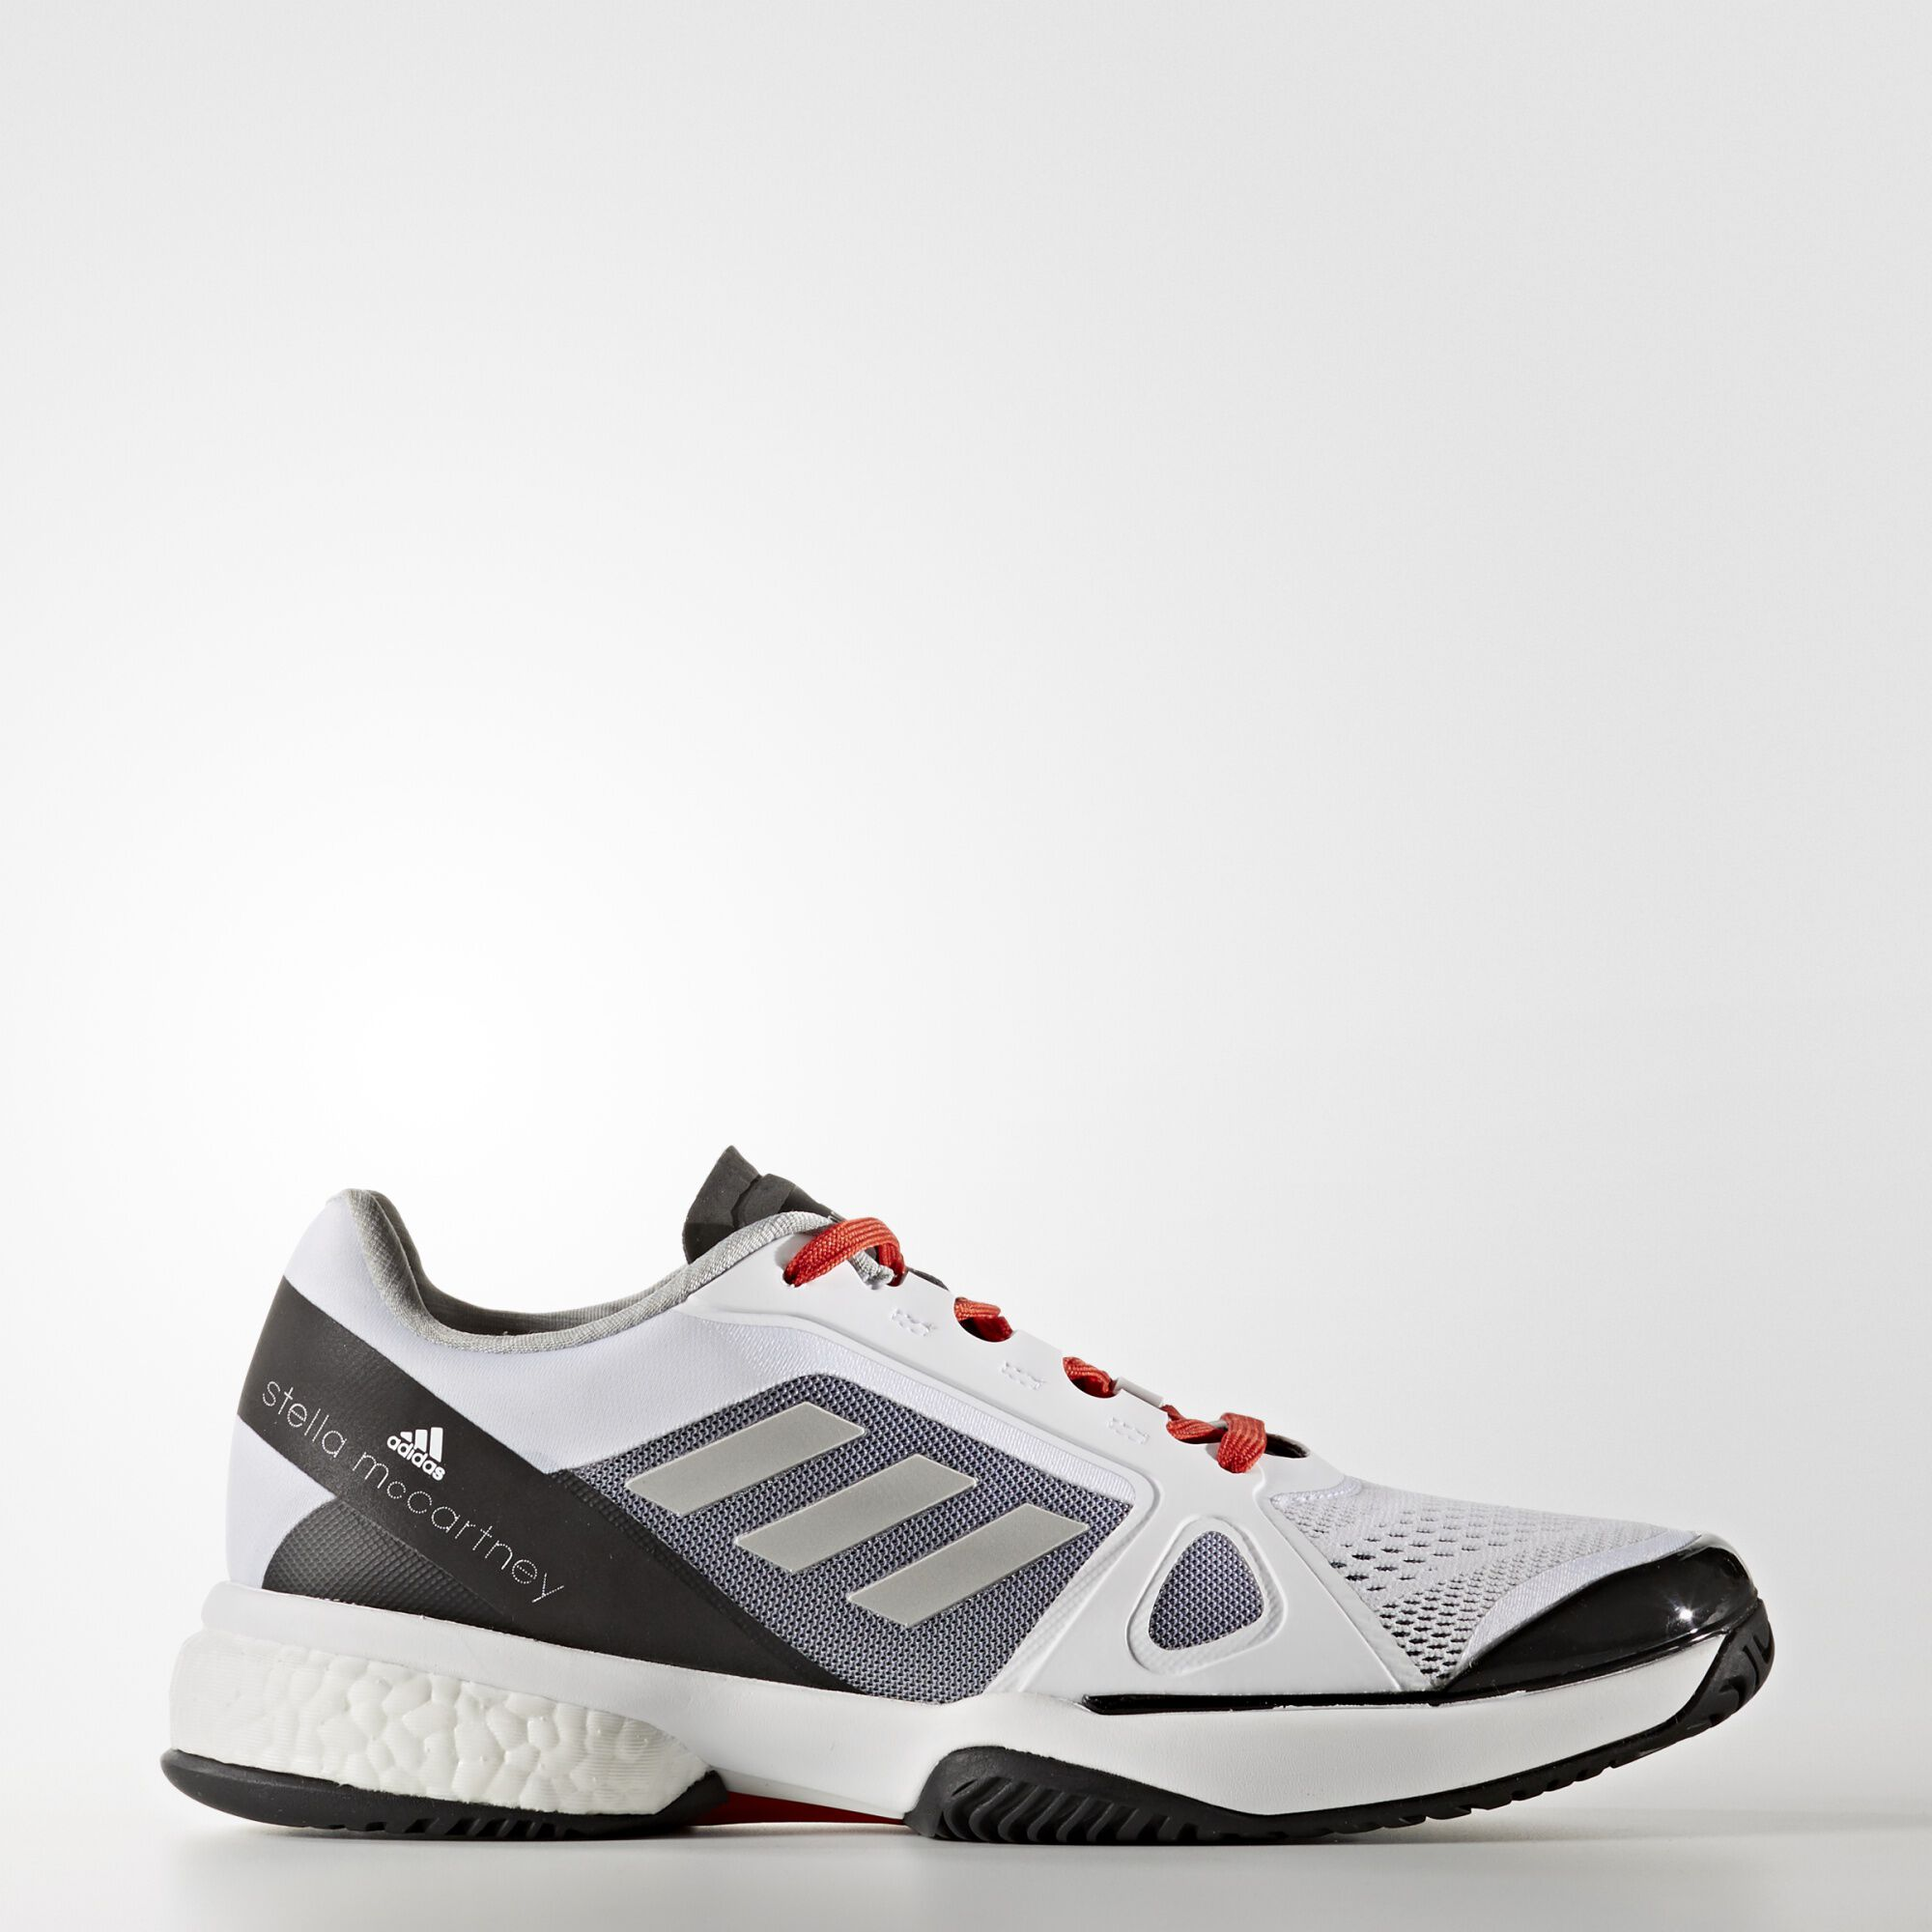 Adidas Shoes 2017